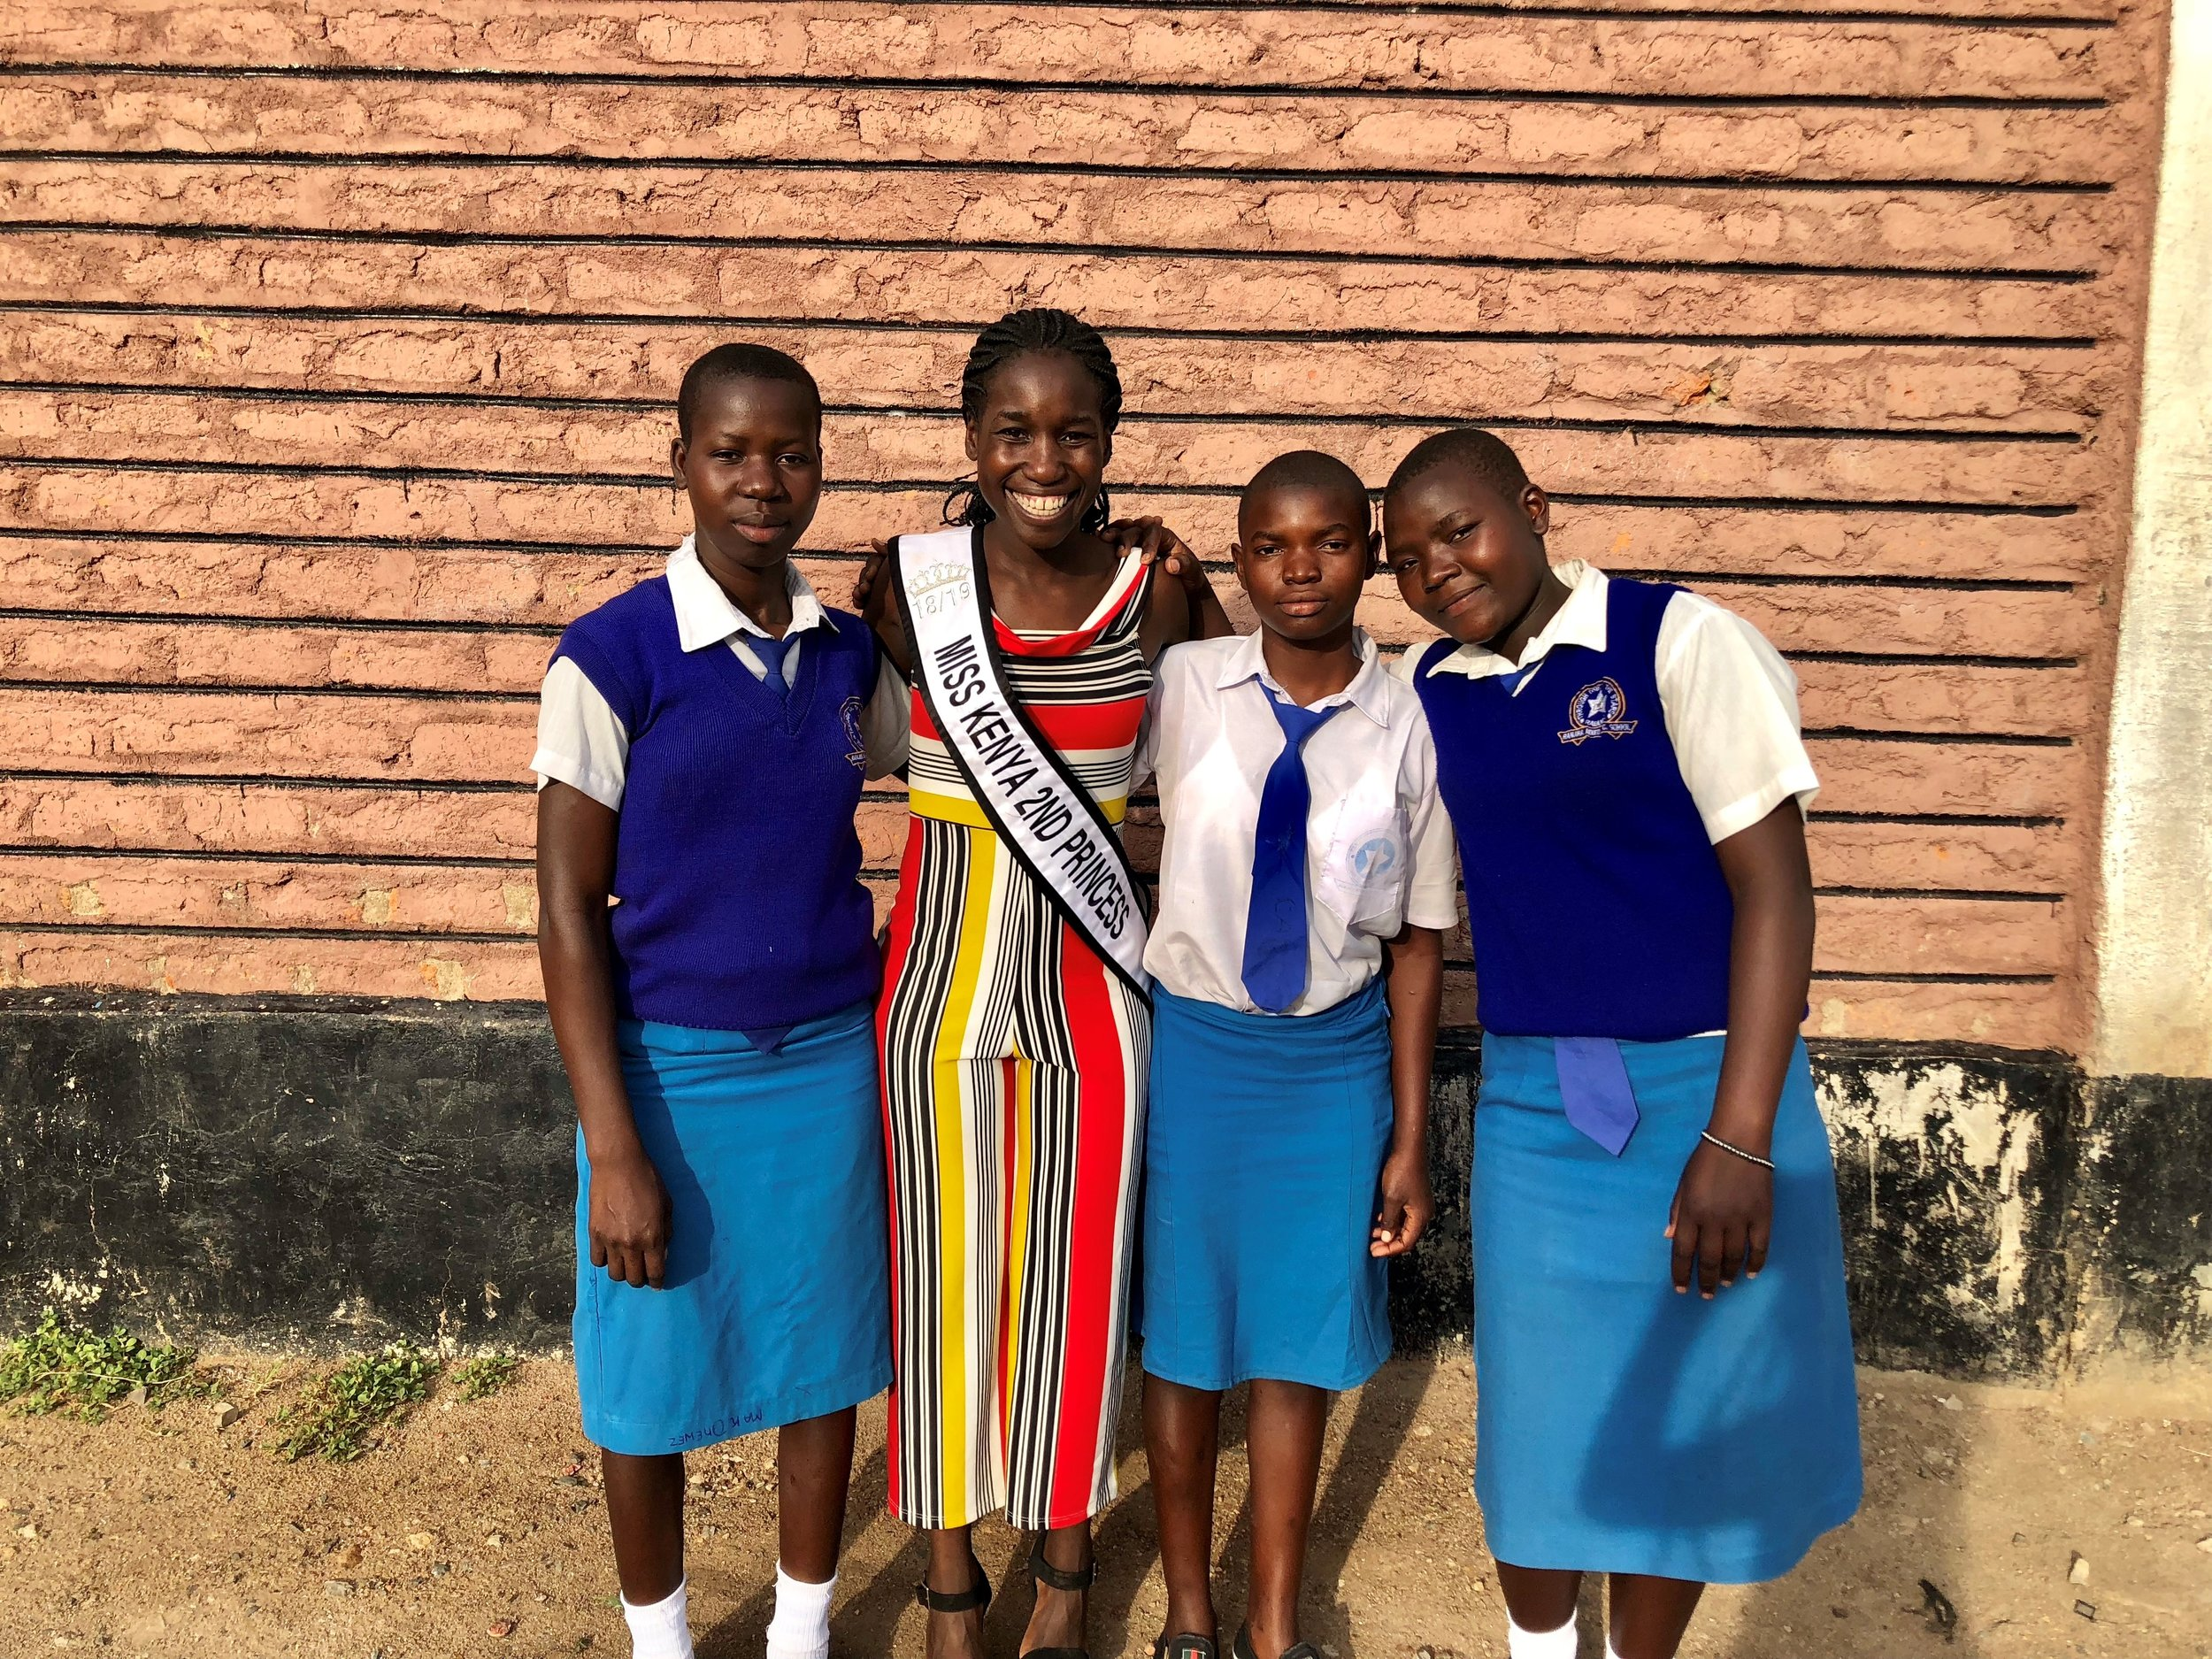 (L to R) Lydia, Caroline, and Violet all attend Ranjira Mixed Secondary Day School in Kisumu Kenya. Each of them are in Form 2 (Sophomore year). These young ladies were selected for the Kisumu Girls Empowerment and Health Scholarship based on academics, merit, and financial hardship. Each of them come from large families. When asked what this scholarship meant to them, they were all thankful and overjoyed. Caroline reiterated that her parents would not have to worry about her tuition and would be able to take care of the family while she focused on doing well in school.